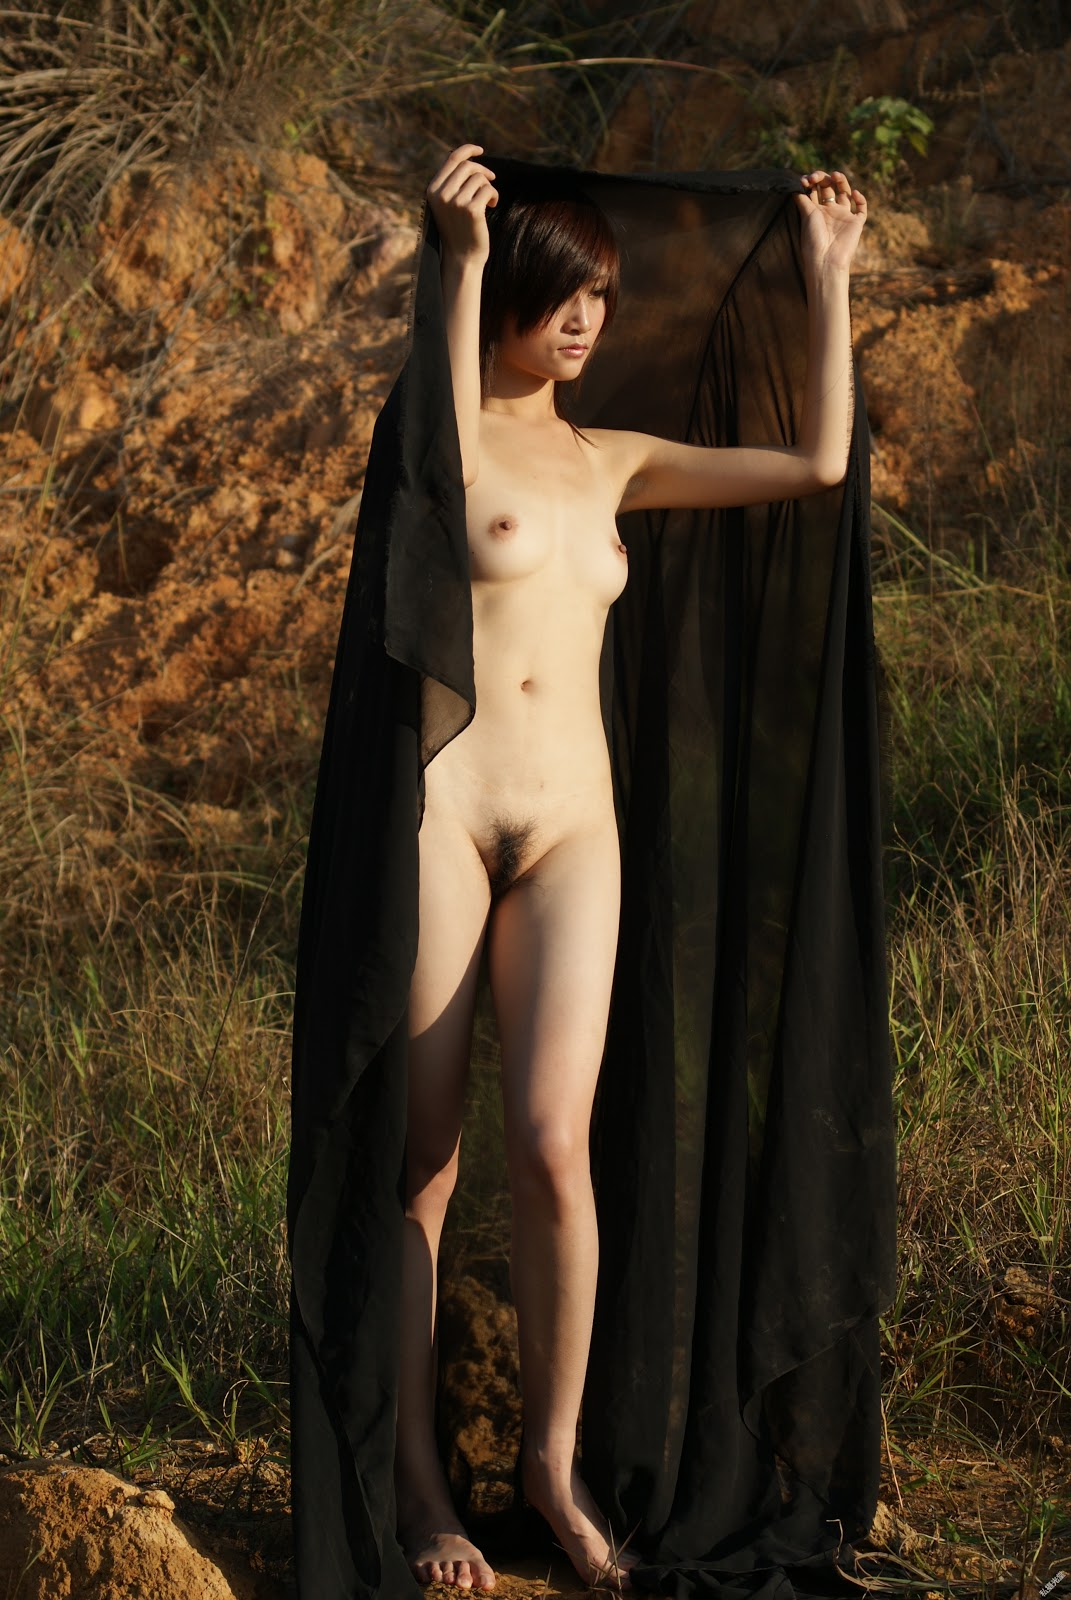 Chinese Nude_Art_Photos_-_239_-_XiaoXuan.rar